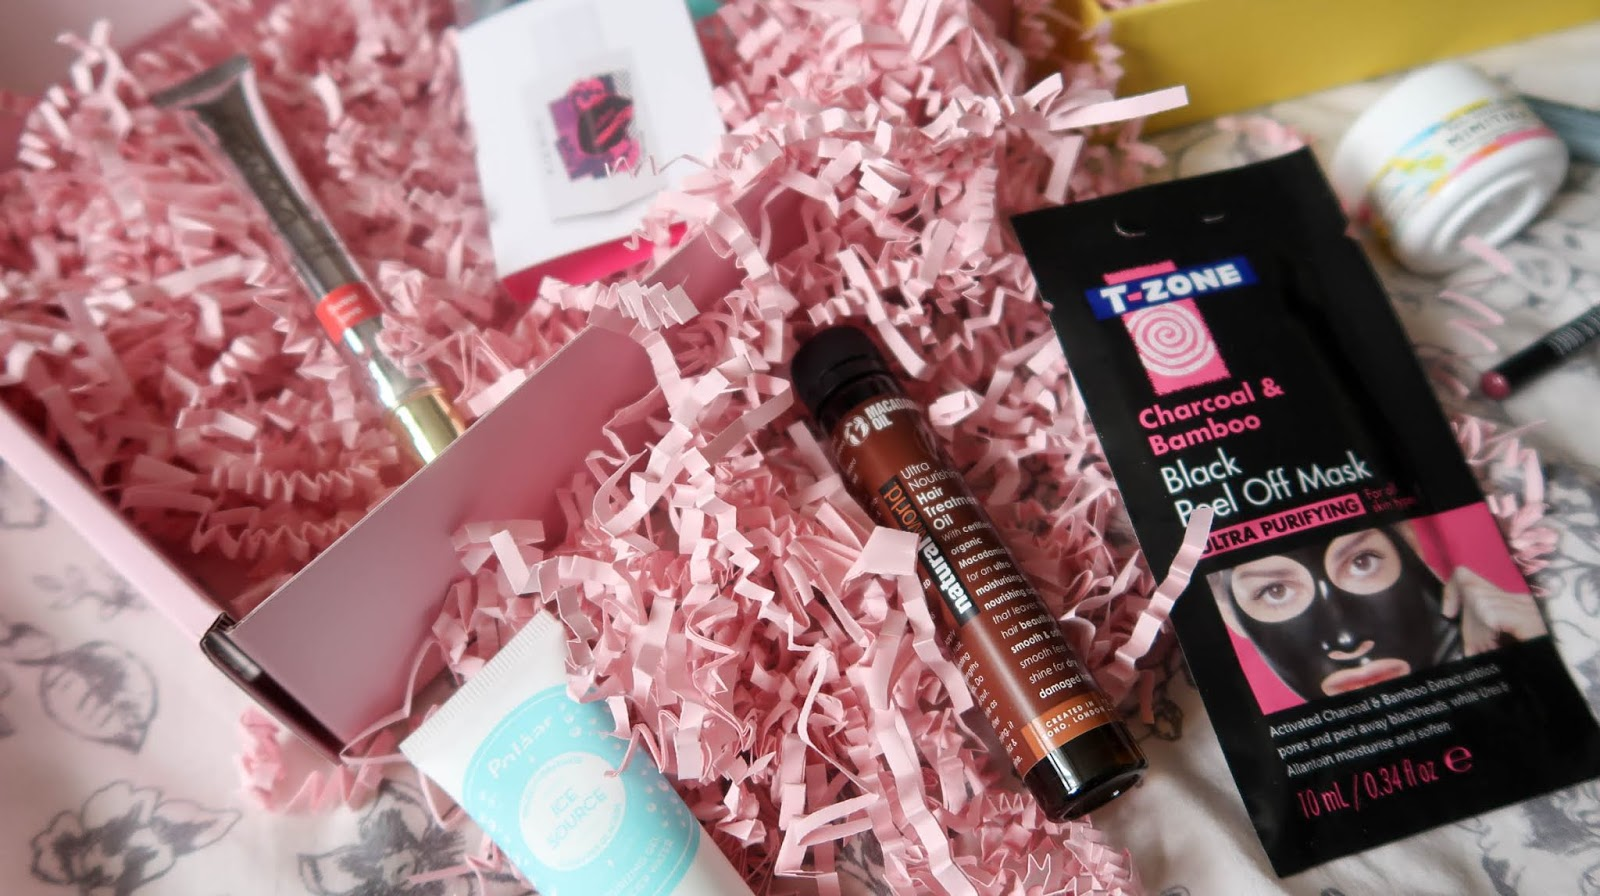 Danielle Levy, Roccabox, Birchbox, Battle of the beauty boxes, beauty blogger, Liverpool blogger, Wirral blogger,